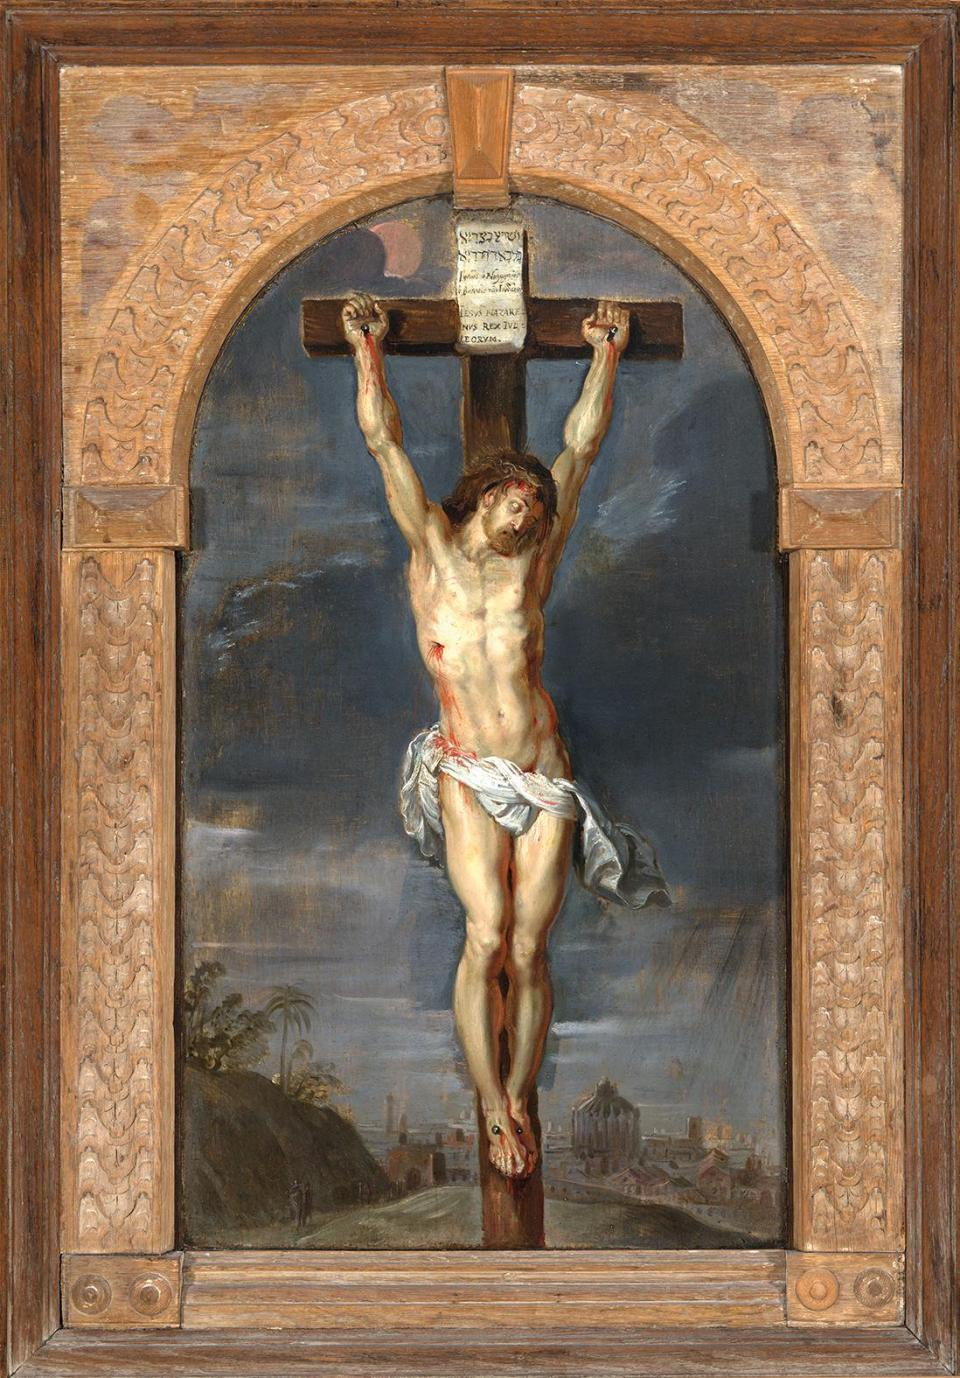 Crucifixion by Peter Paul Rubens and workshop